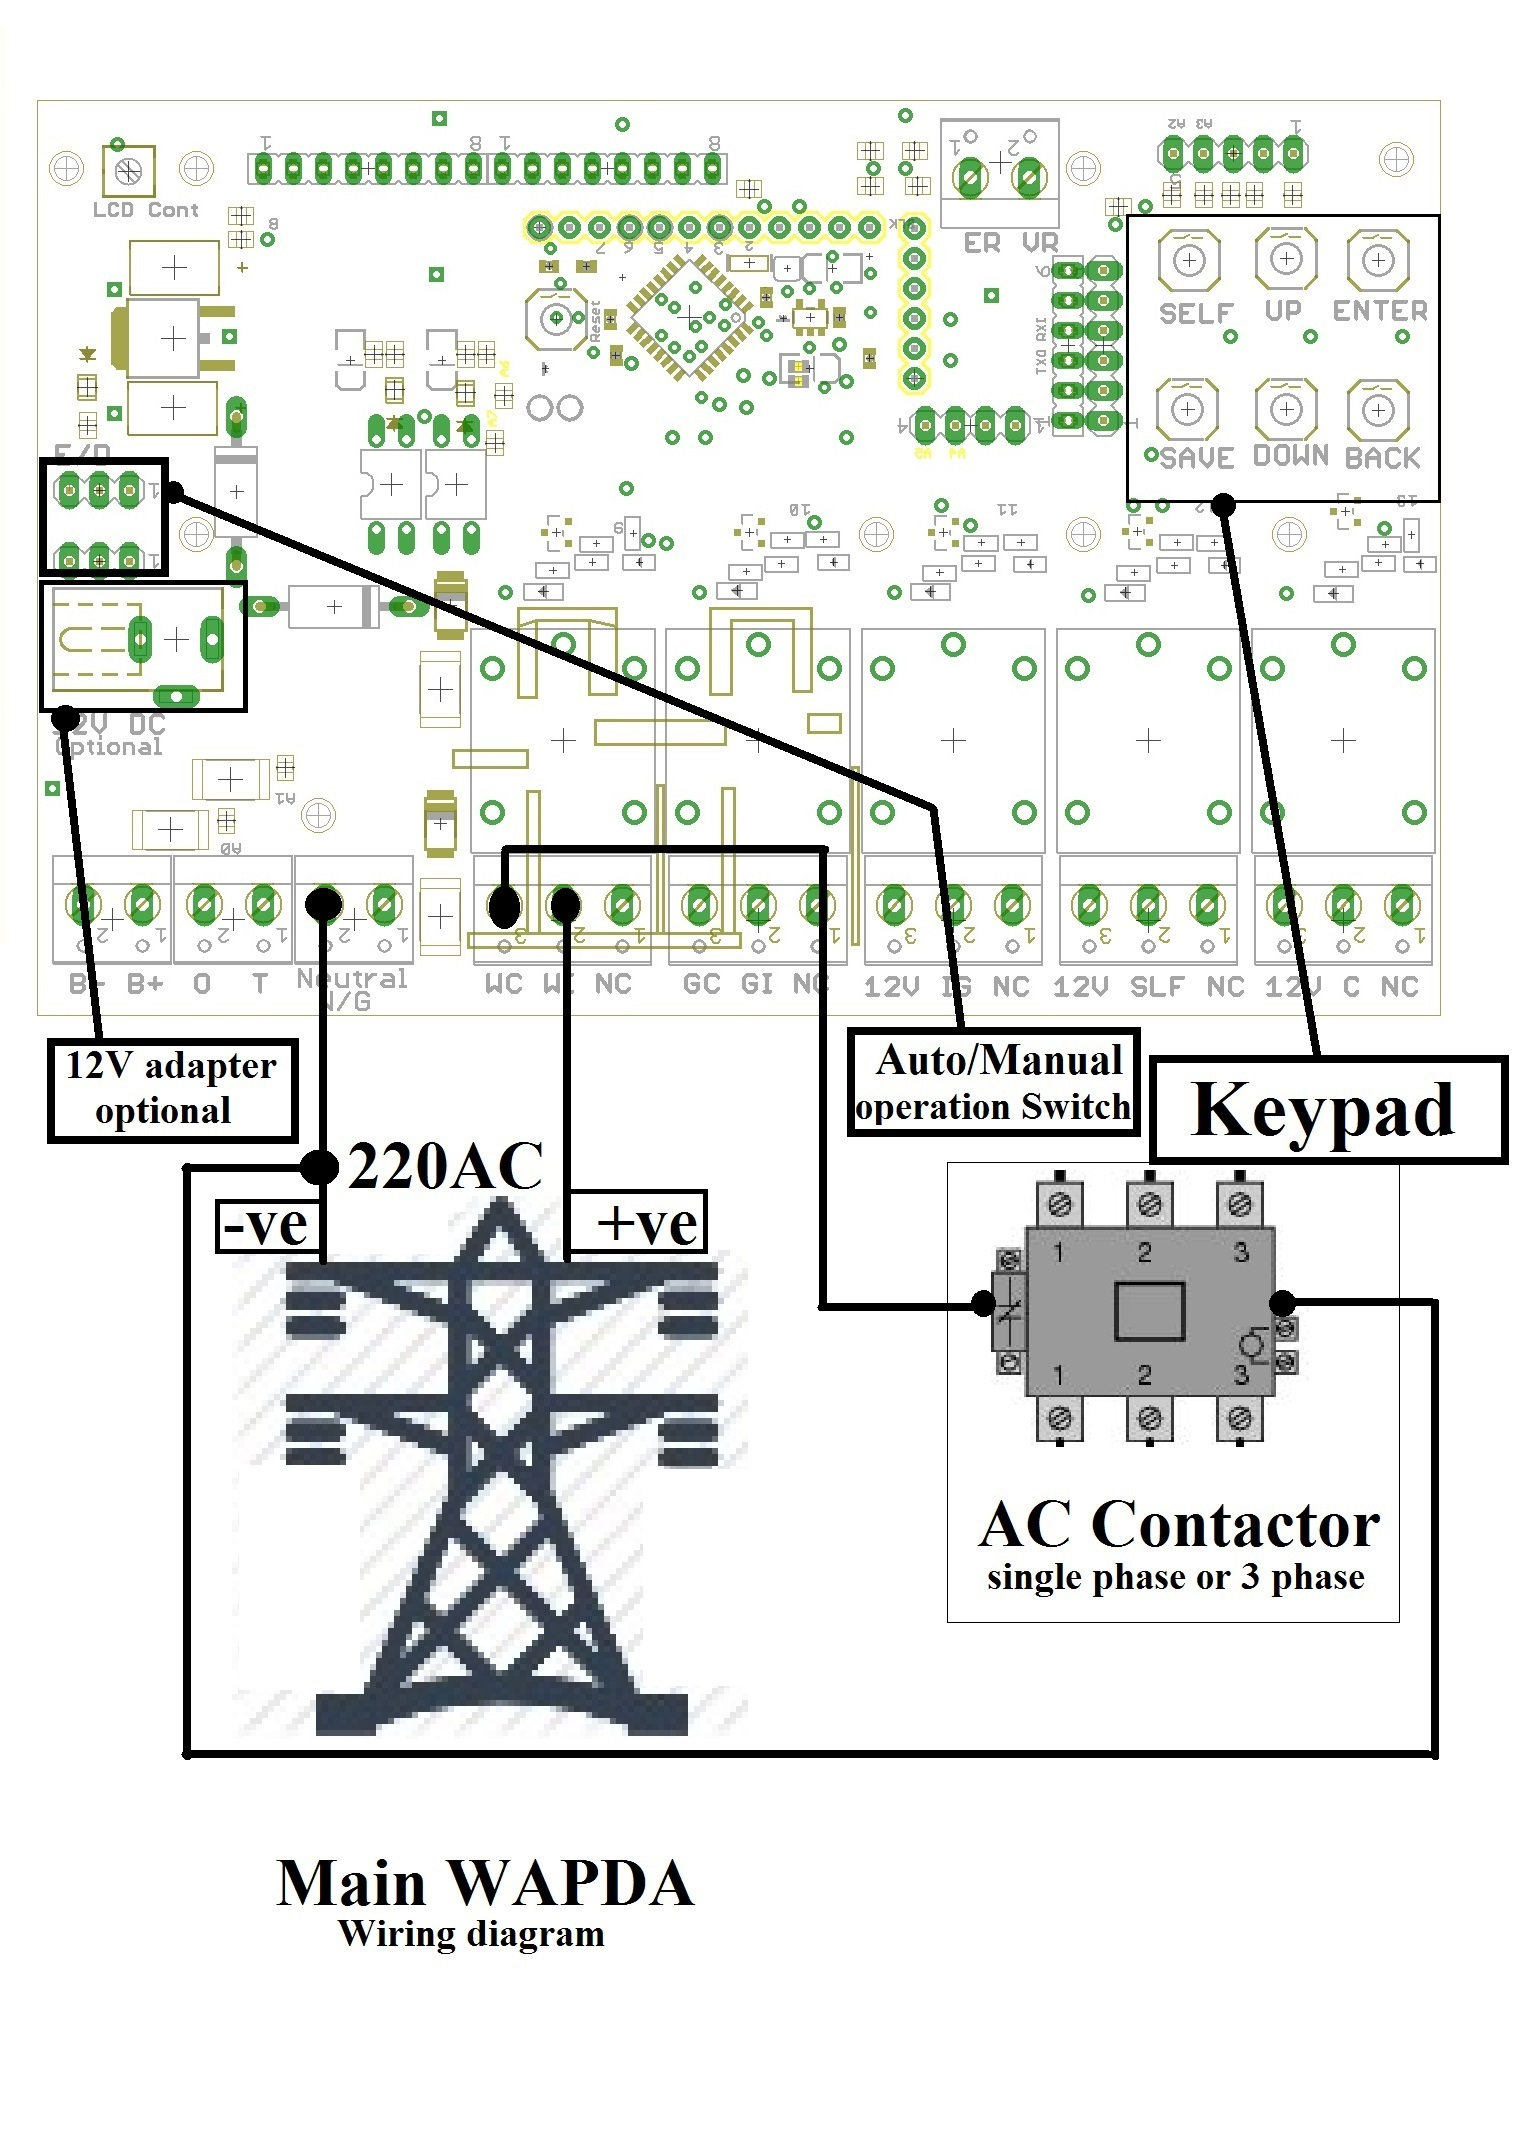 Generator auto changeover switch wiring diagram the best wiring smartest ats automatic generator start stop controller transfer ats diagram swarovskicordoba Images